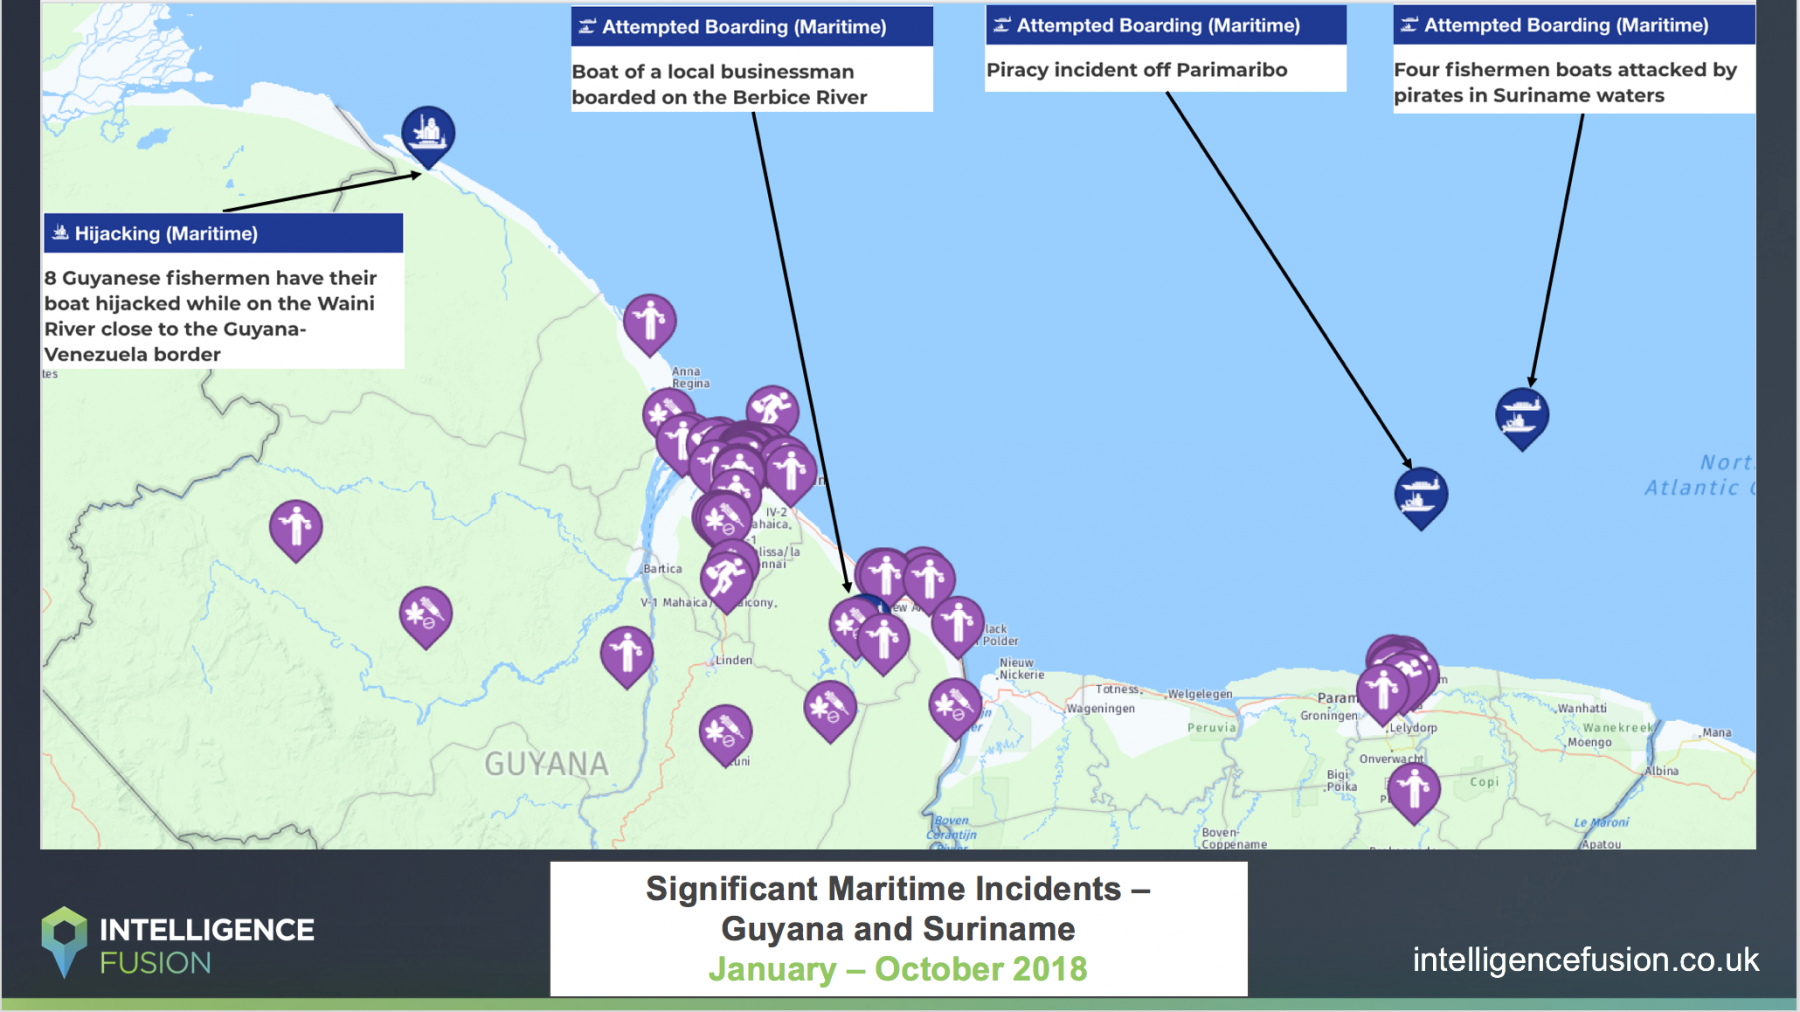 A map depicting the maritime related threats and cases of maritime criminality in Guyana and Suriname in 2018 so far